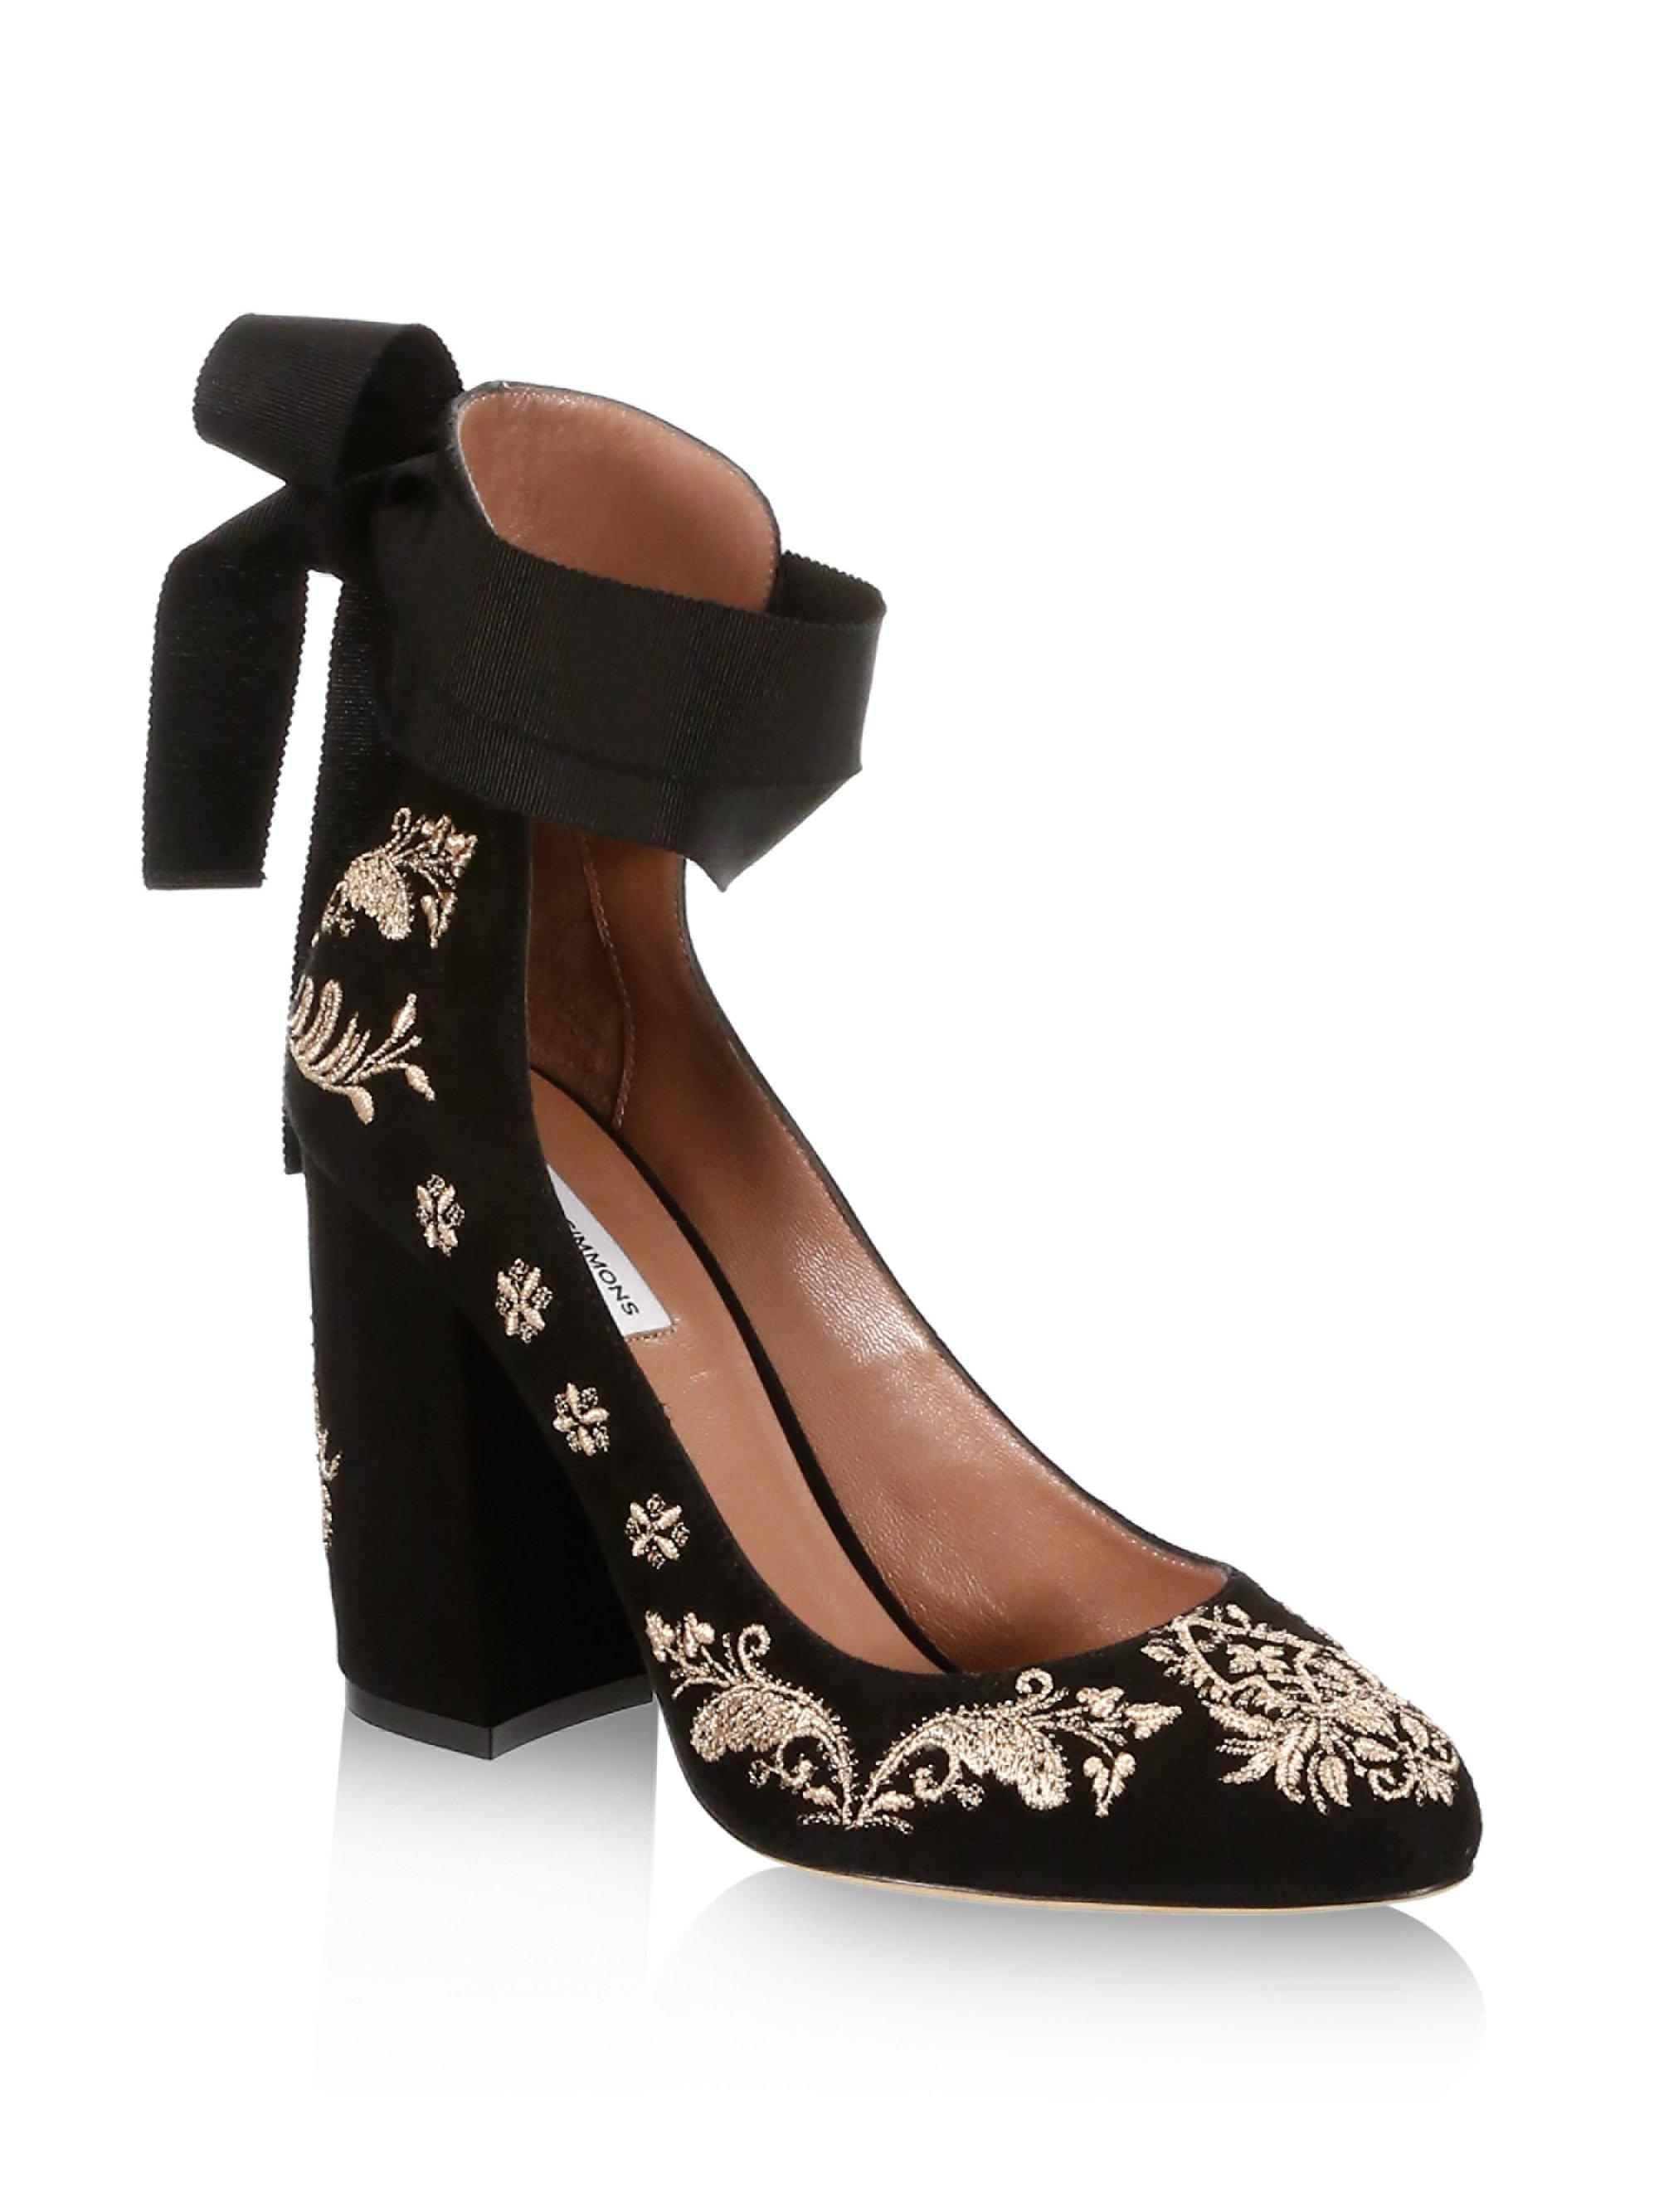 FOOTWEAR - Courts Tabitha Simmons QwhIRRYw